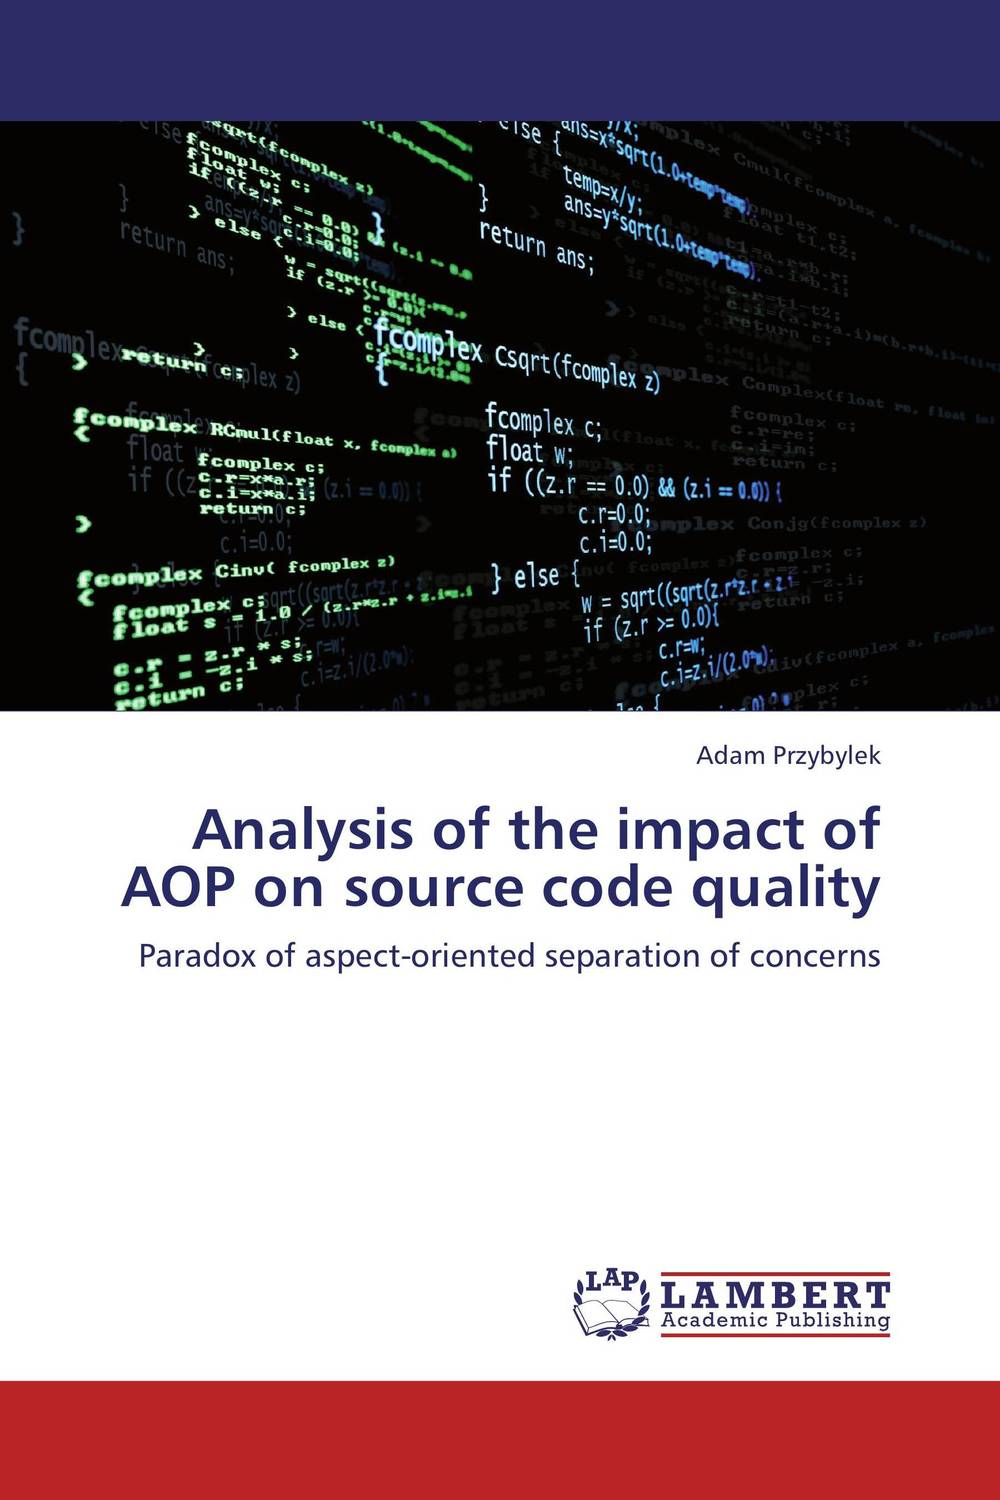 Analysis of the impact of AOP on source code quality a tutorial on java socket programming and source code analysis